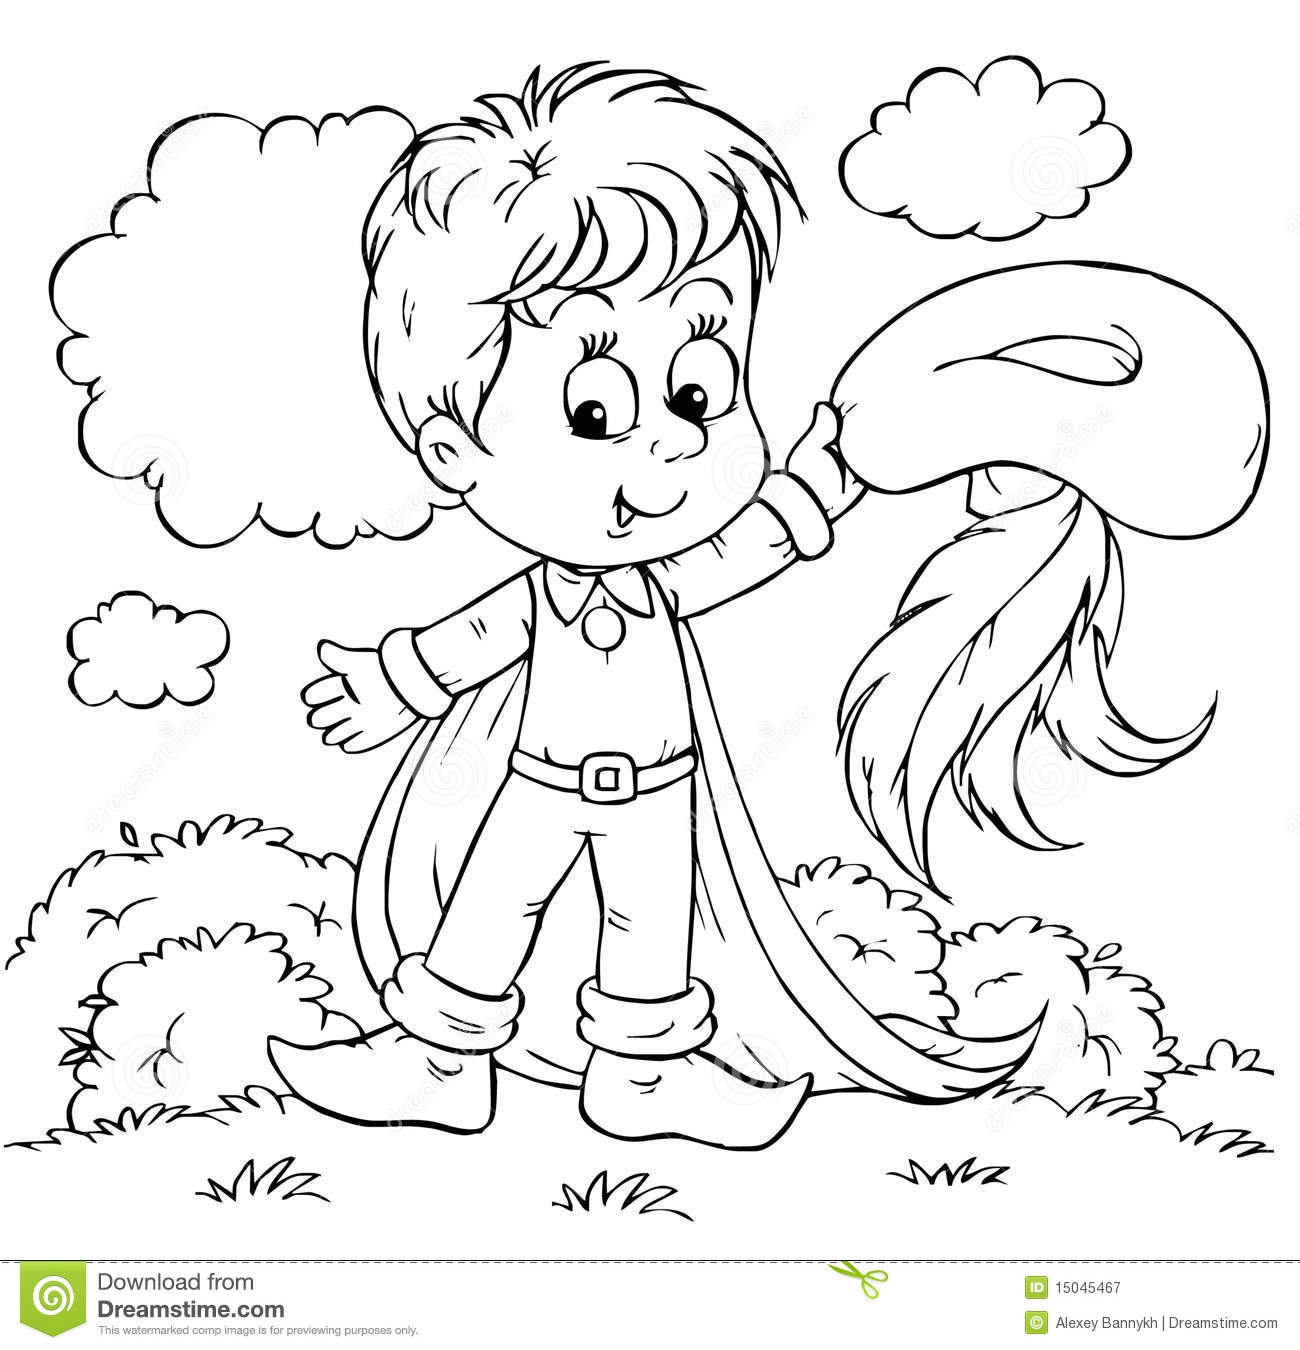 tom thumb coloring pages - photo#9